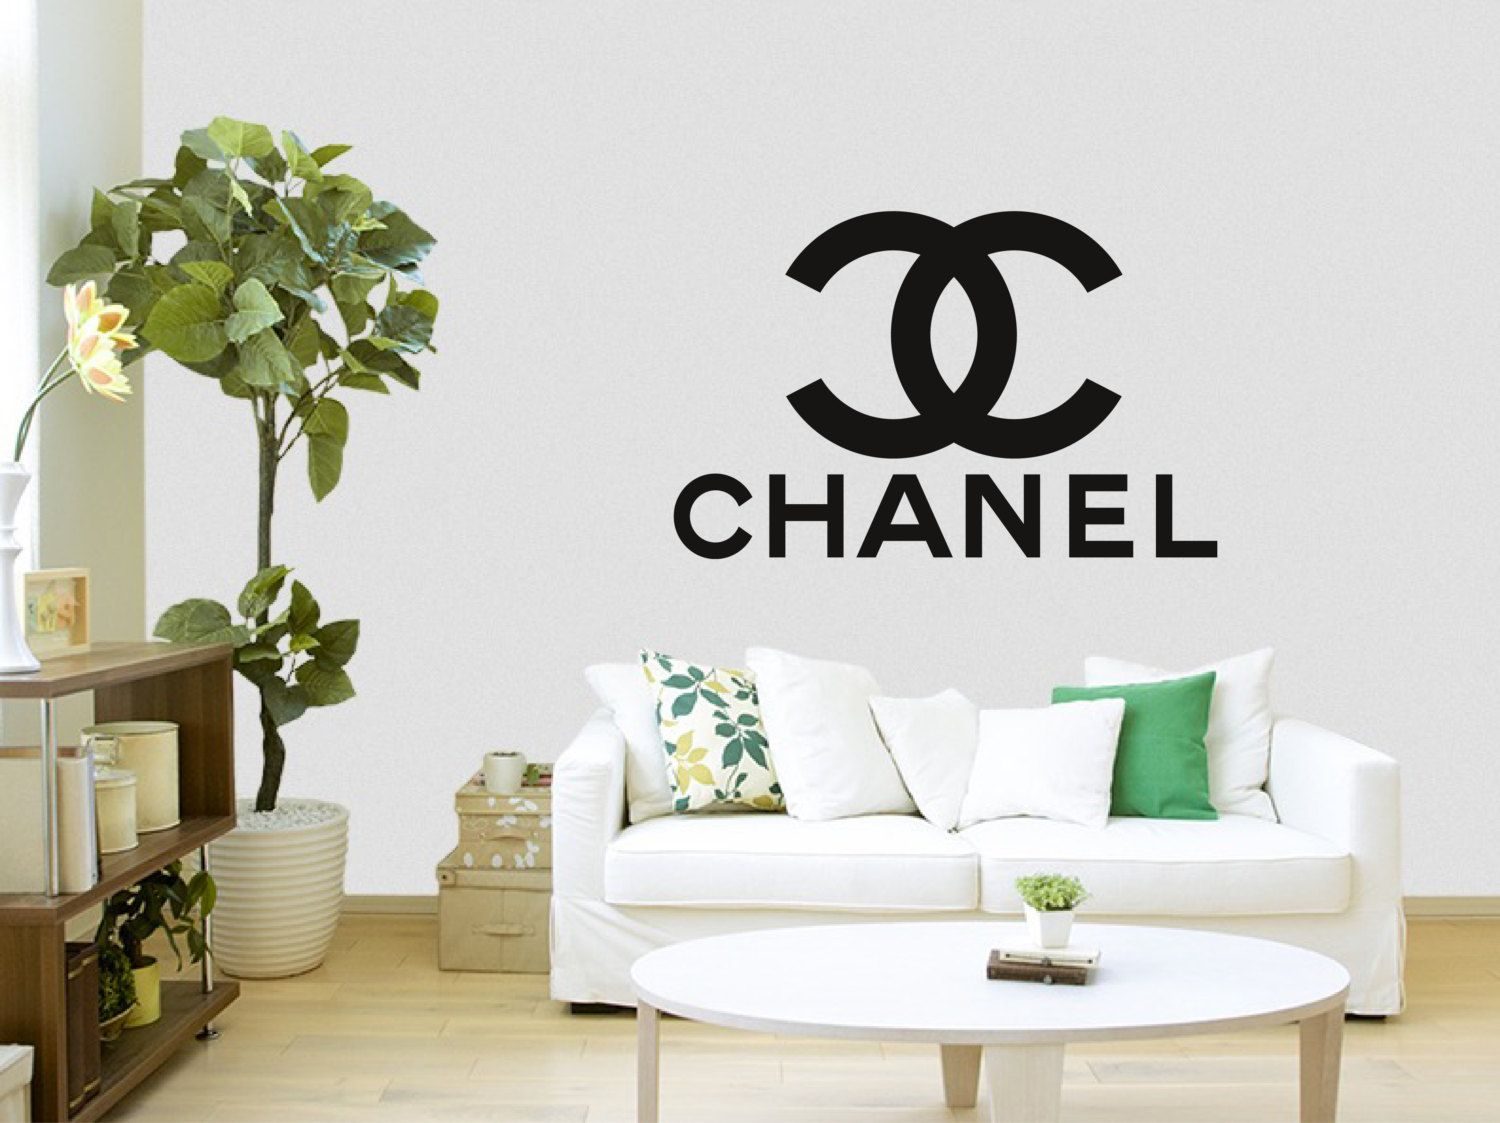 coco chanel logo with words wall sticker